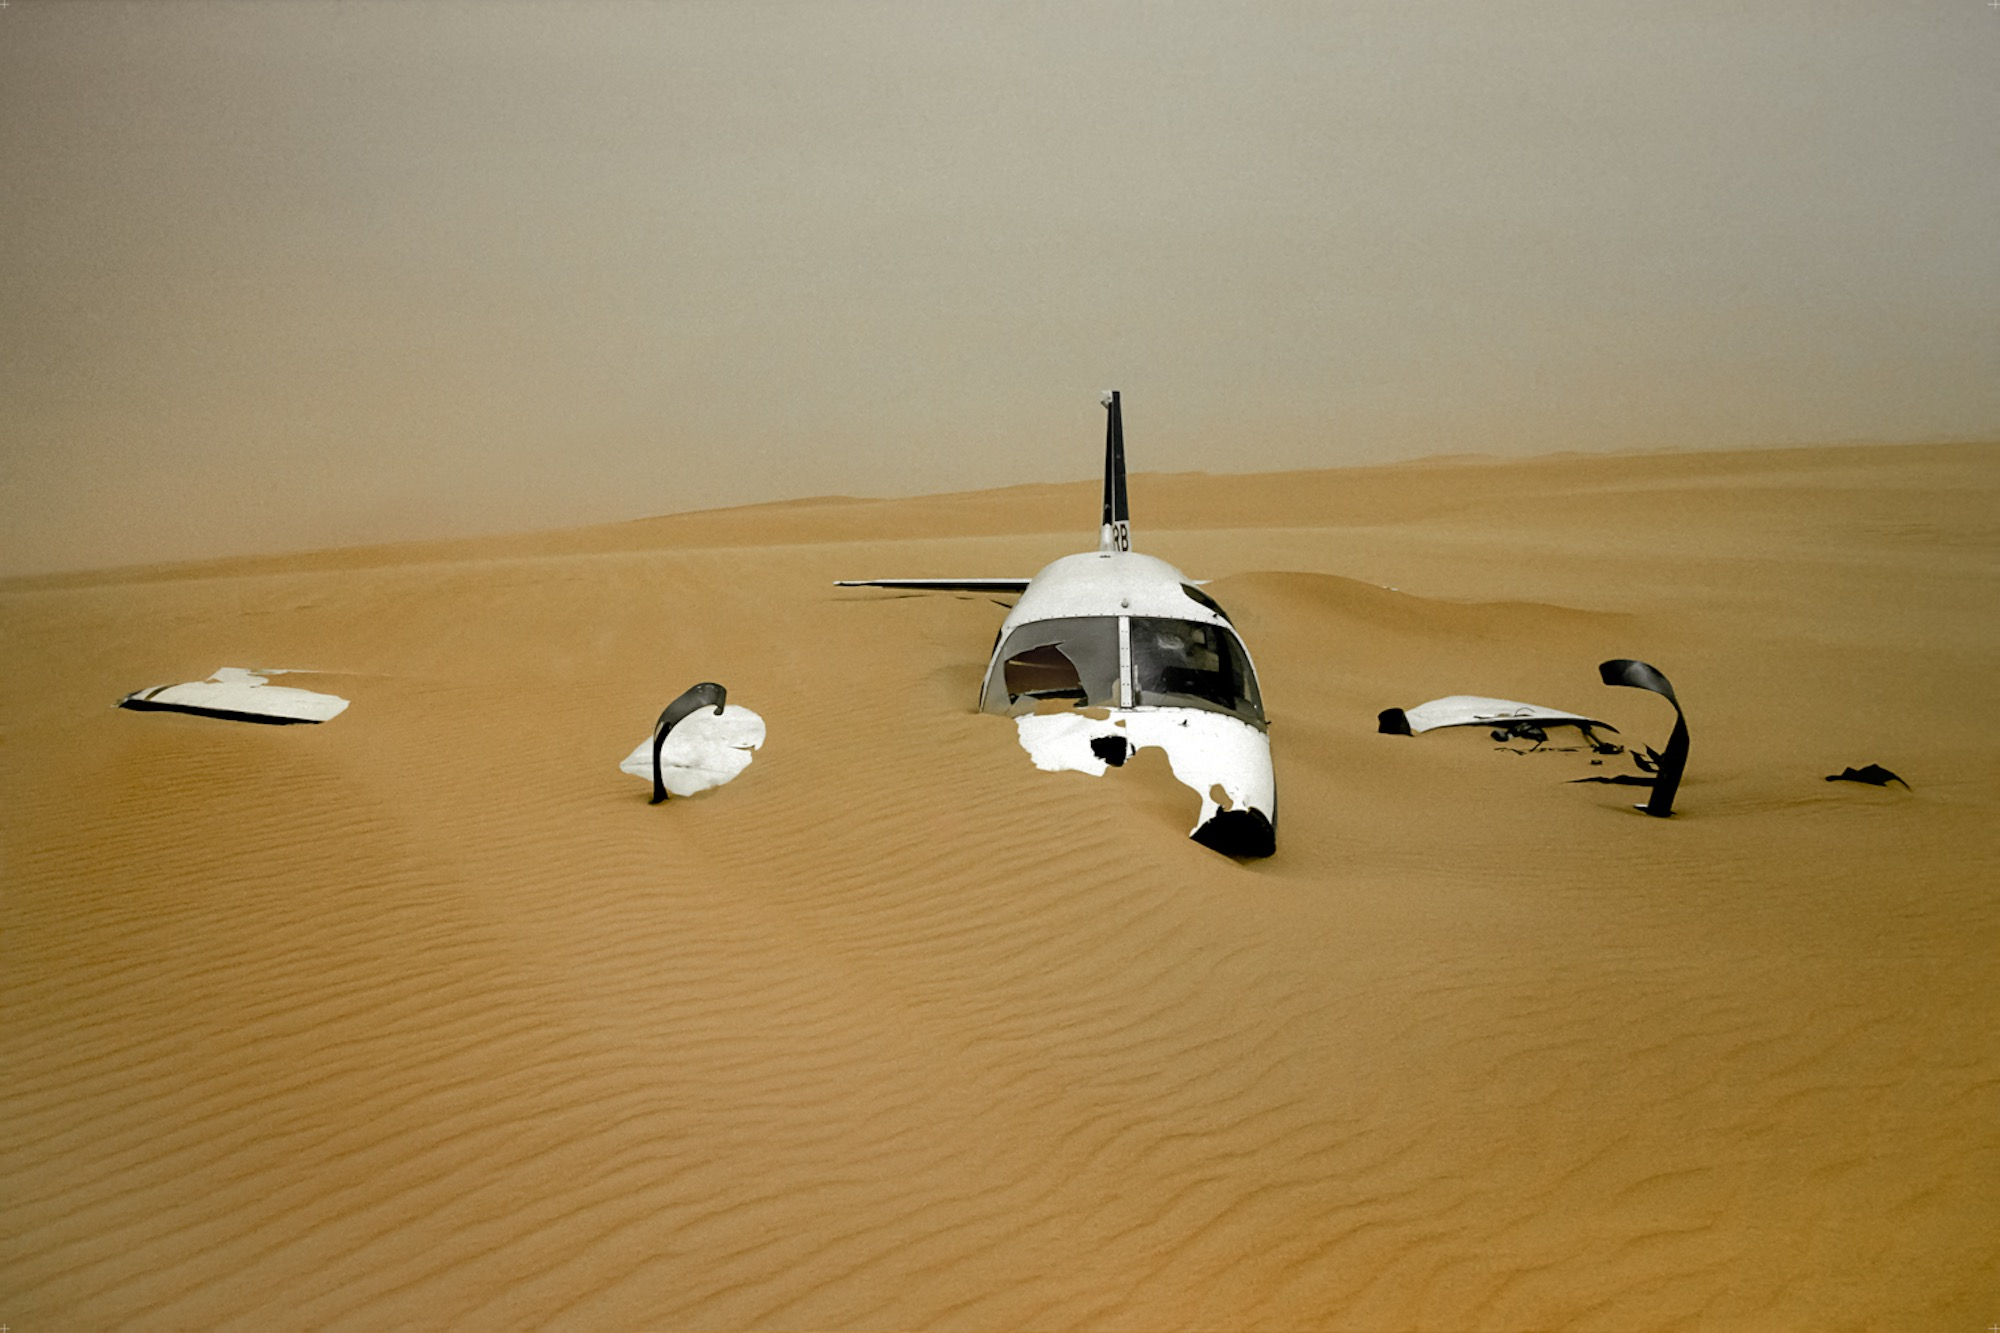 The Sand and the Plane - Yann Arthus-Bertrand